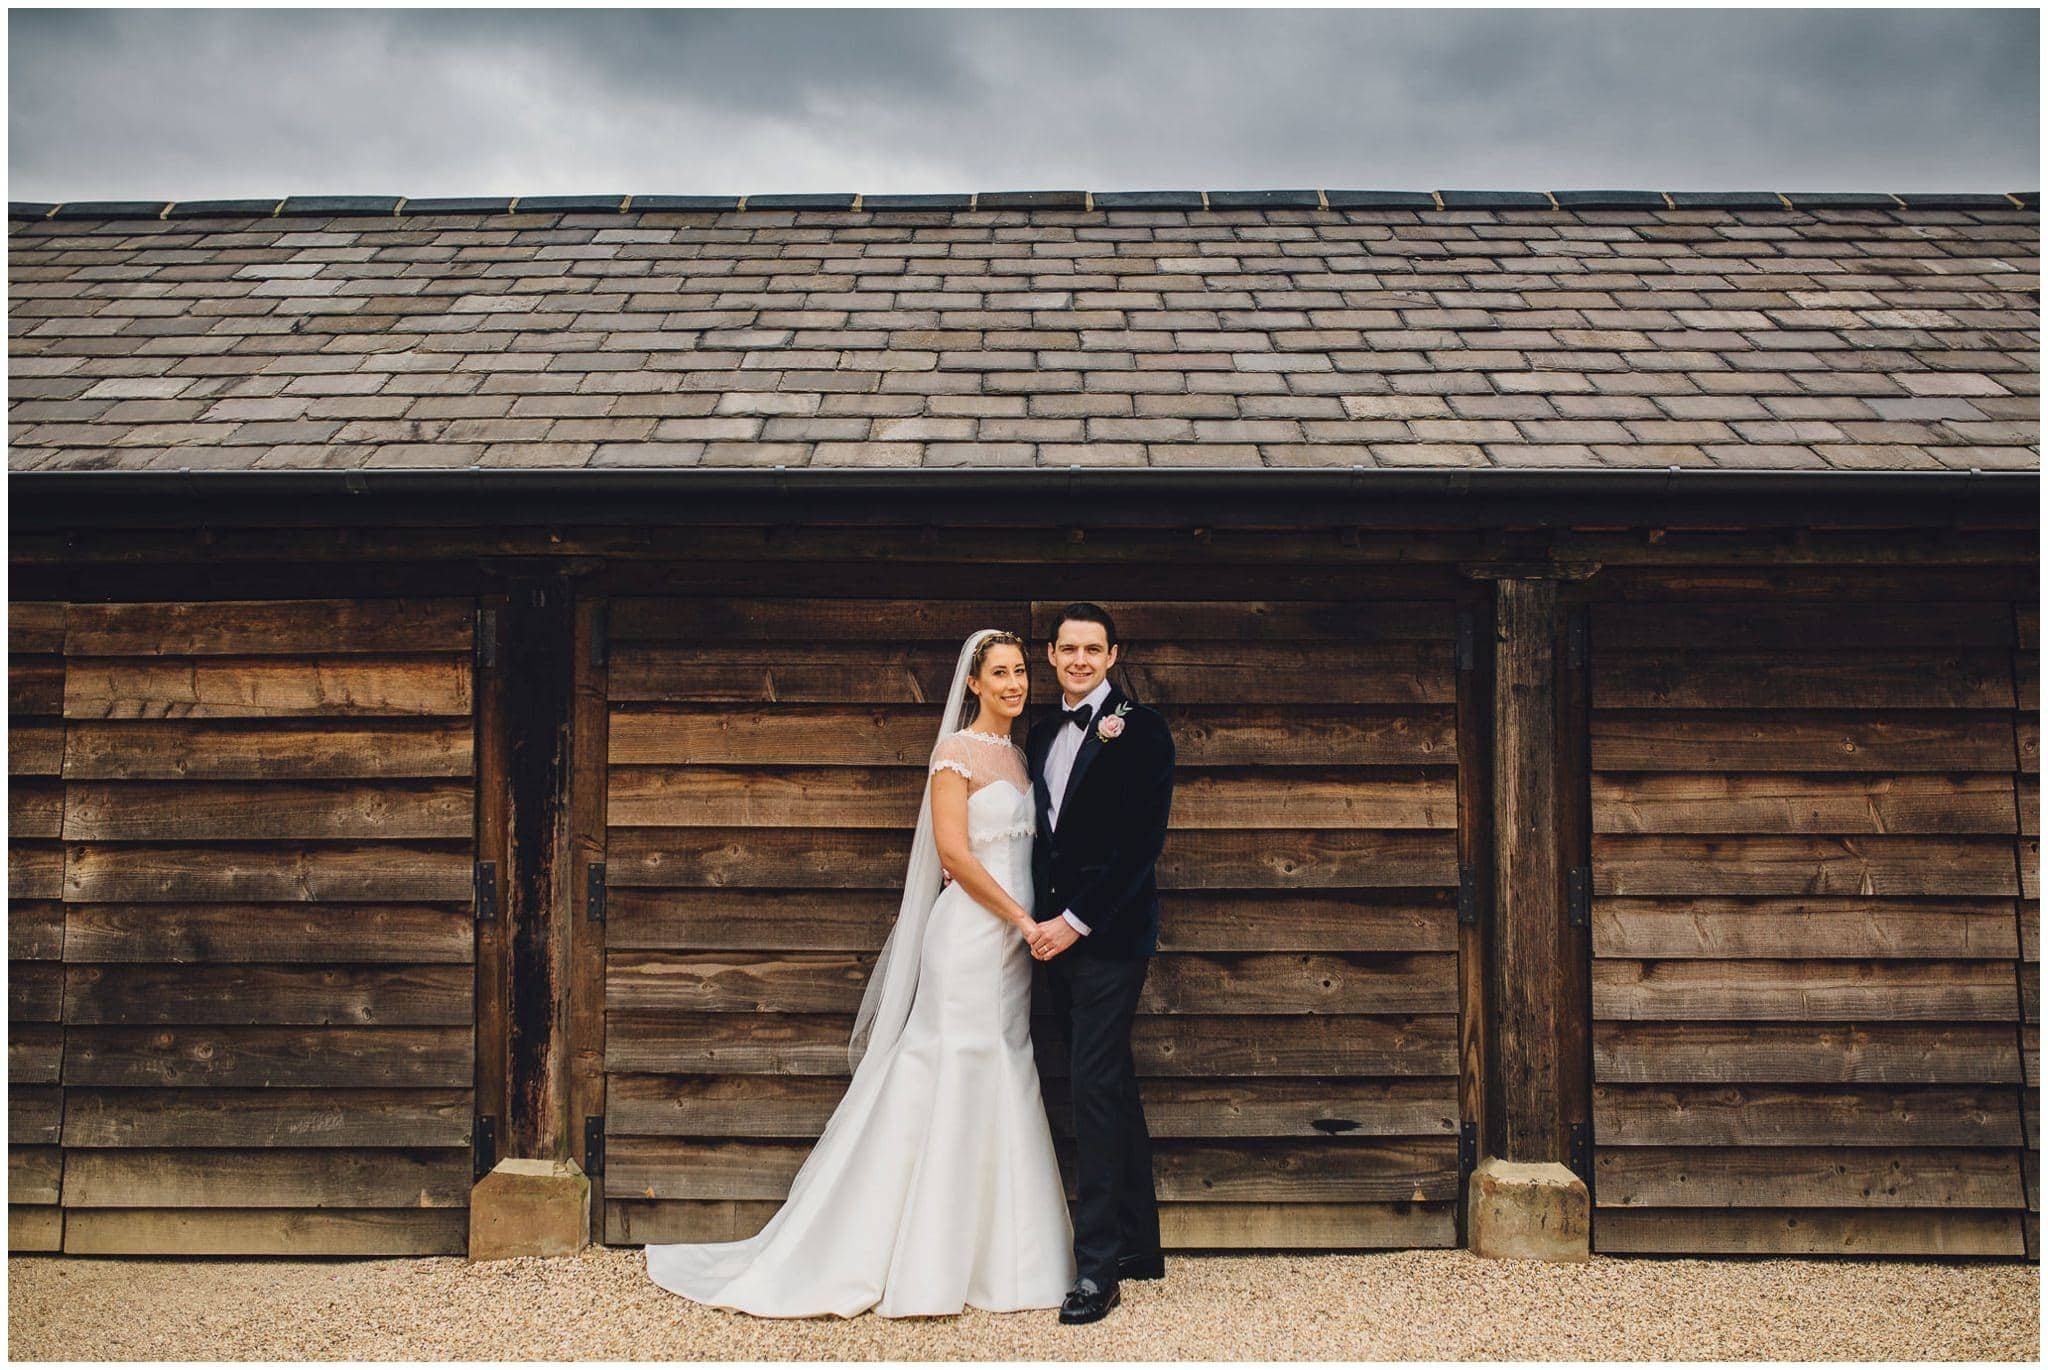 Dodford Manor Wedding Photographer – Andrea & James